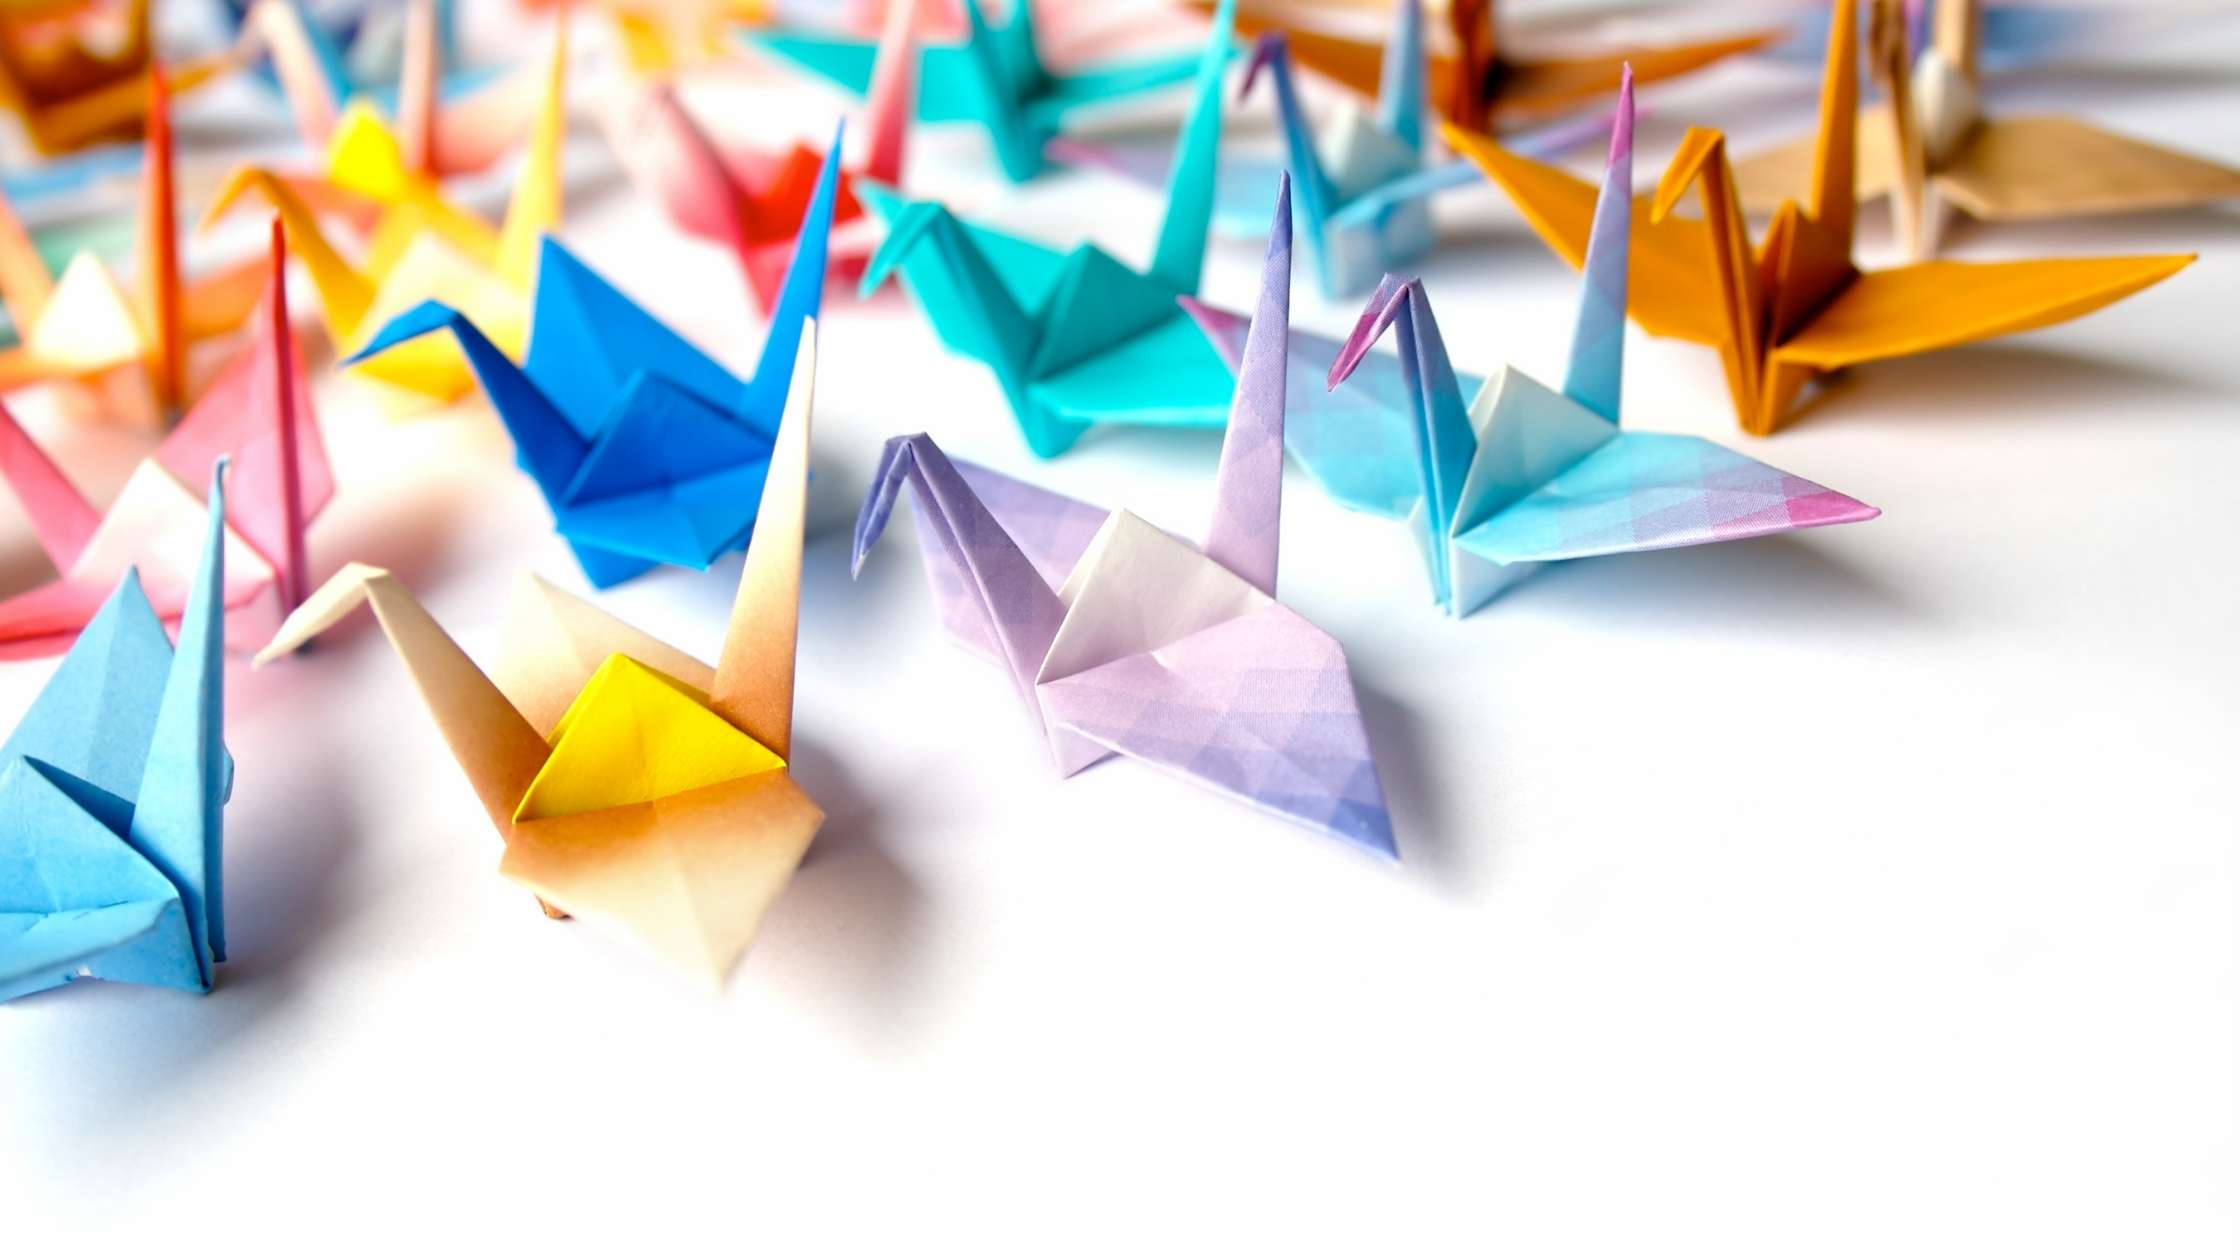 Flutter concept; collection of multicoloured origami paper cranes on a light background